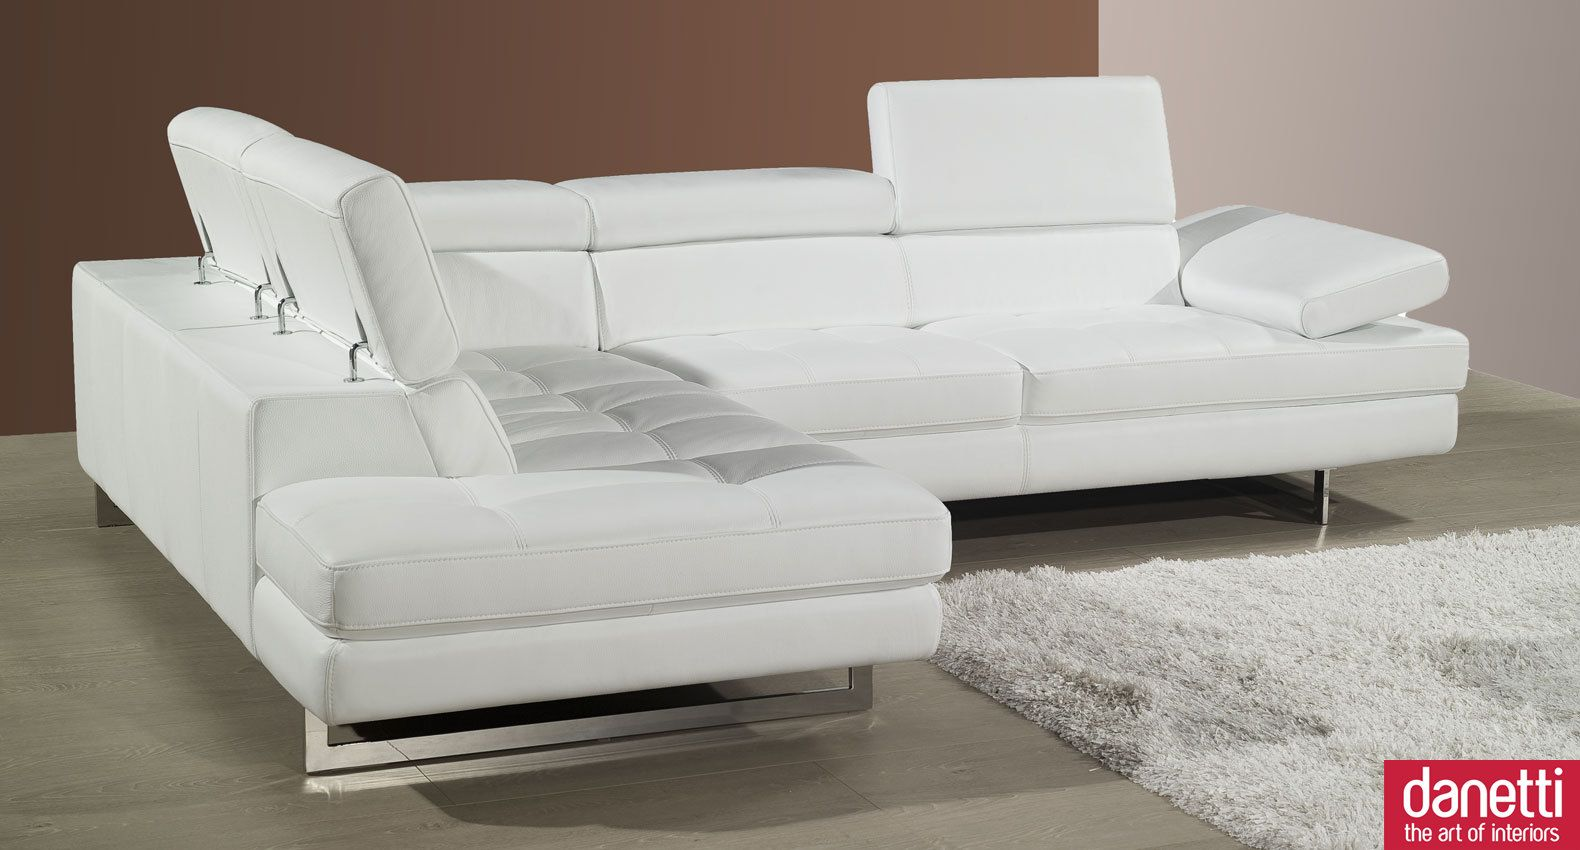 White Leather Sofa Bed For Modern White Leather Couchimage Gallery Image Idi Design